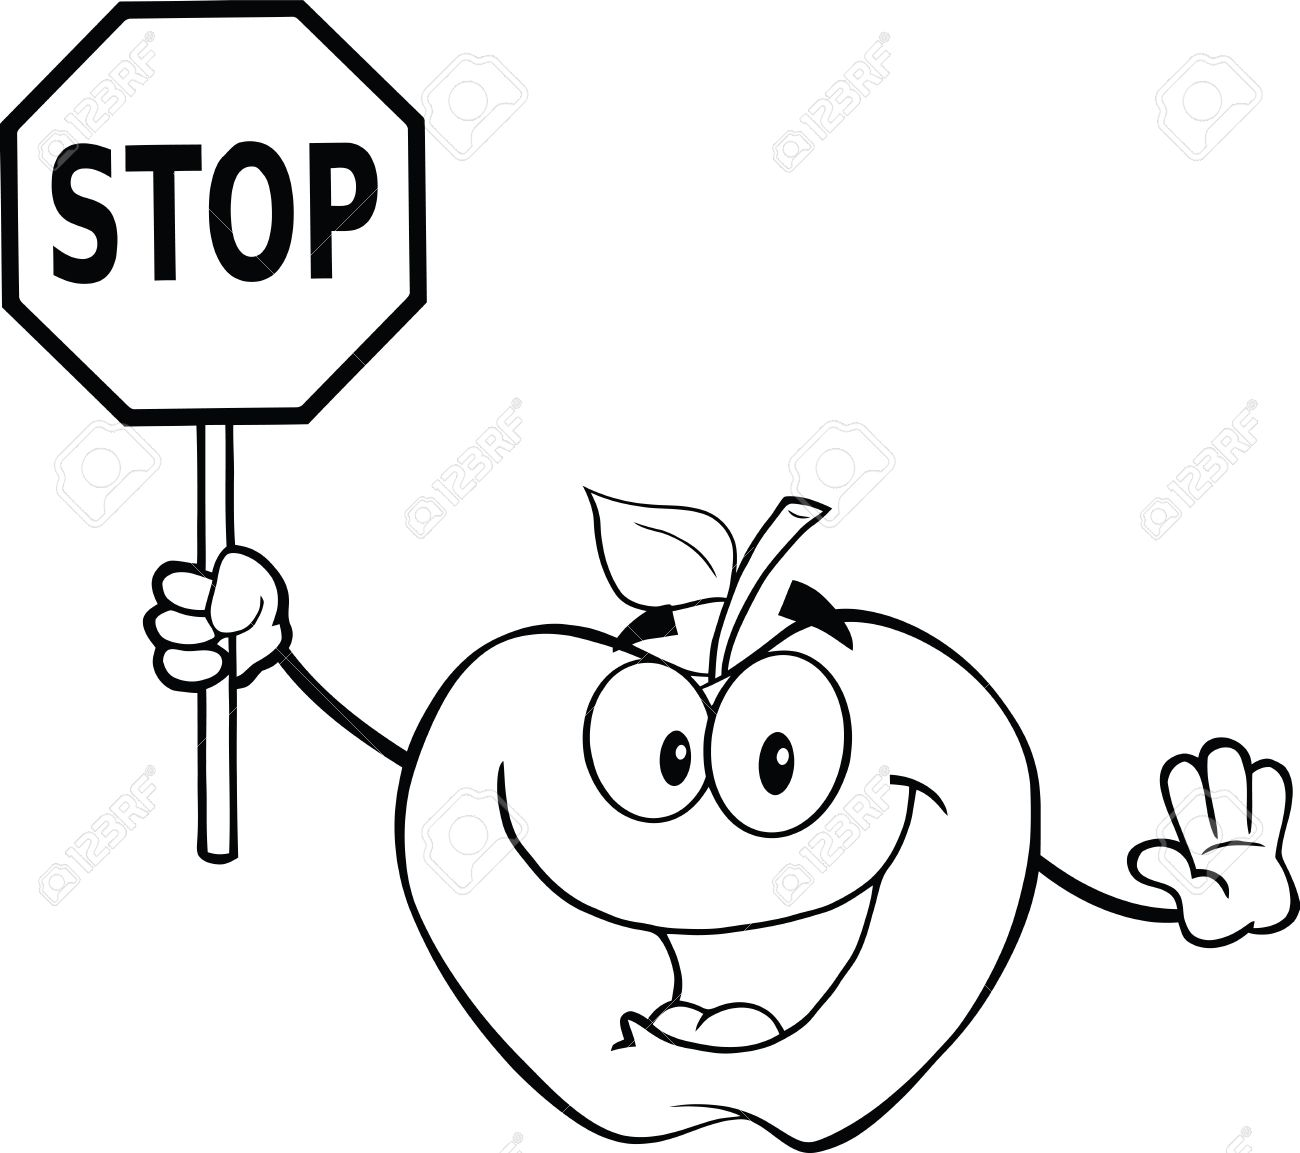 Best Stop Sign Black And White #13934 - Clipartion.com for Stop Sign Clipart Black And White  153tgx